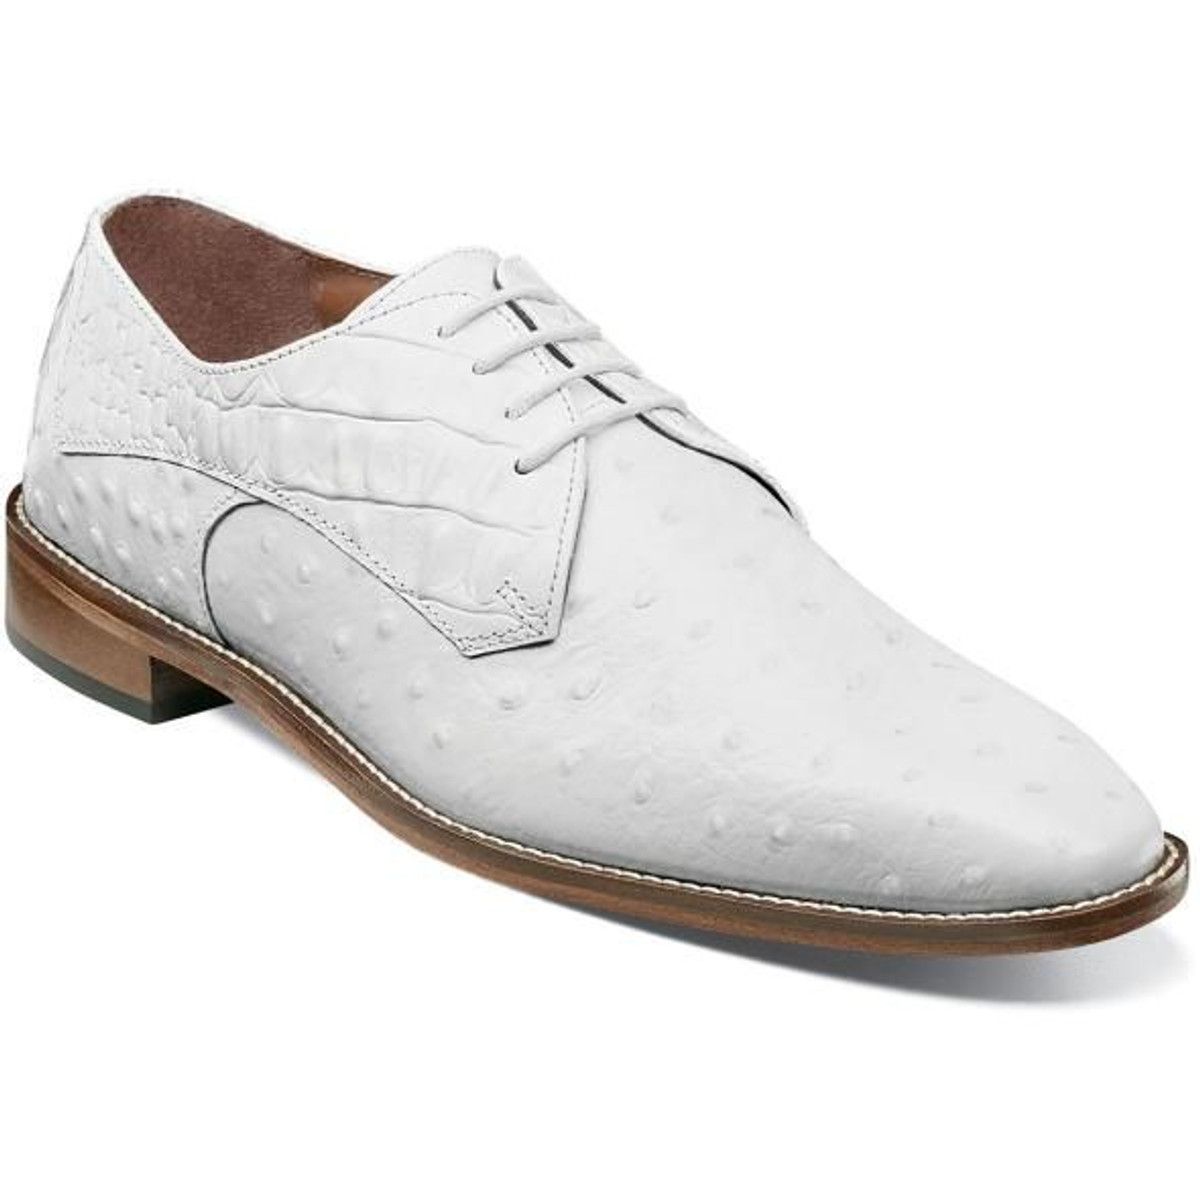 Stacy Adams White Ostrich Print Leather